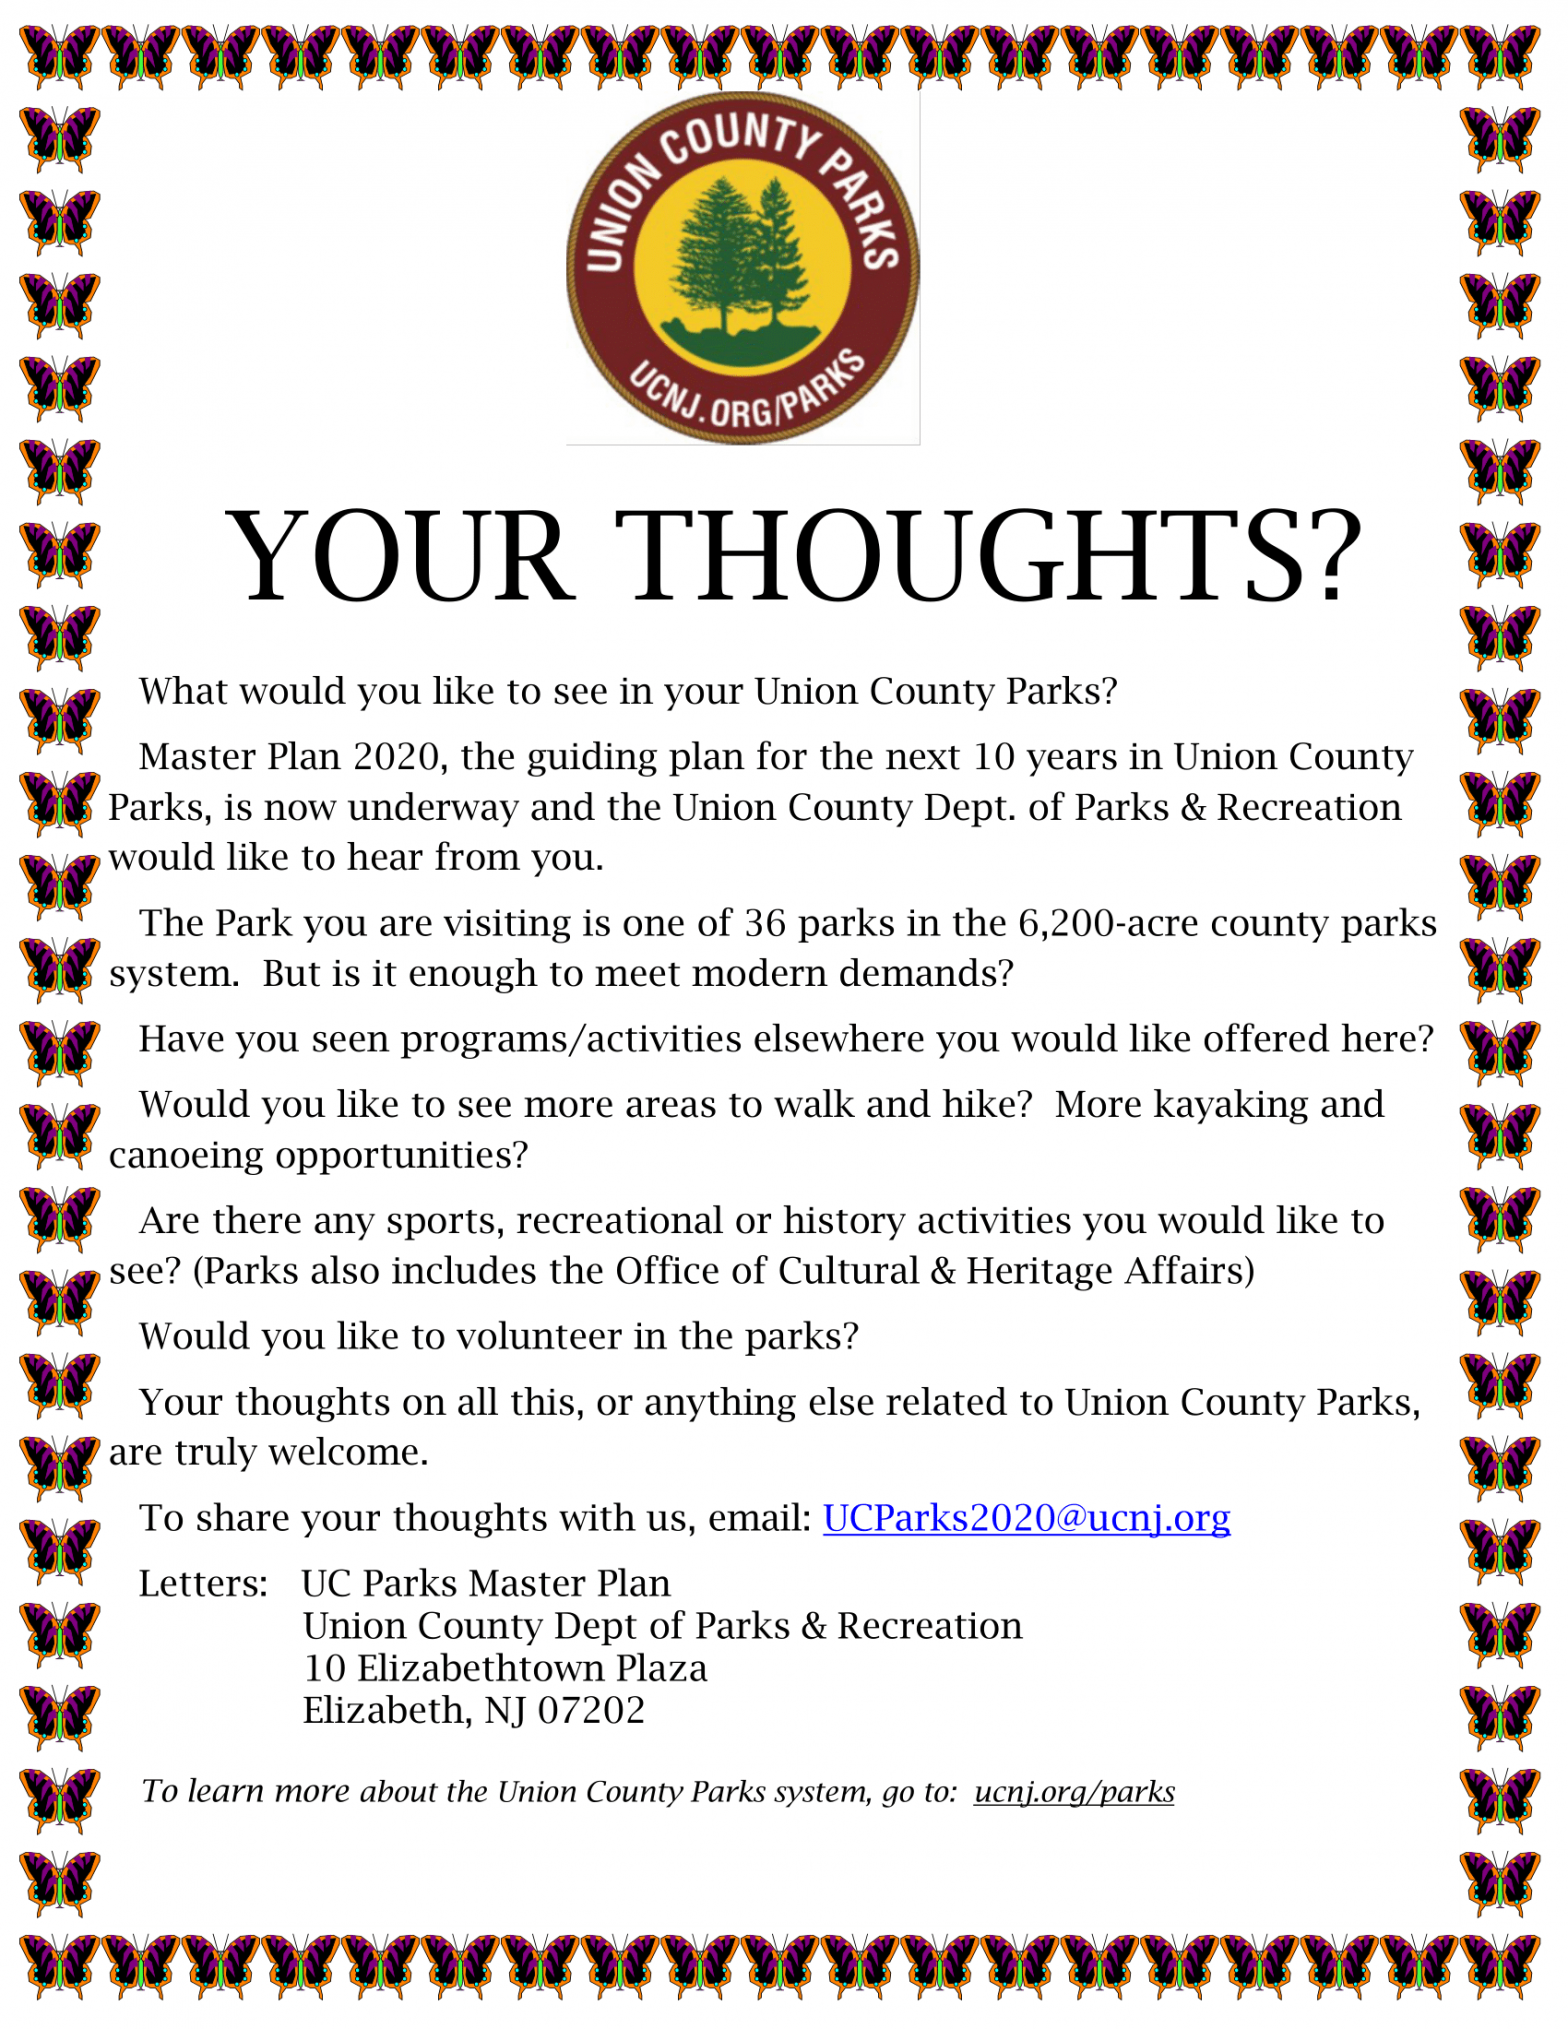 UC wants your thoughts